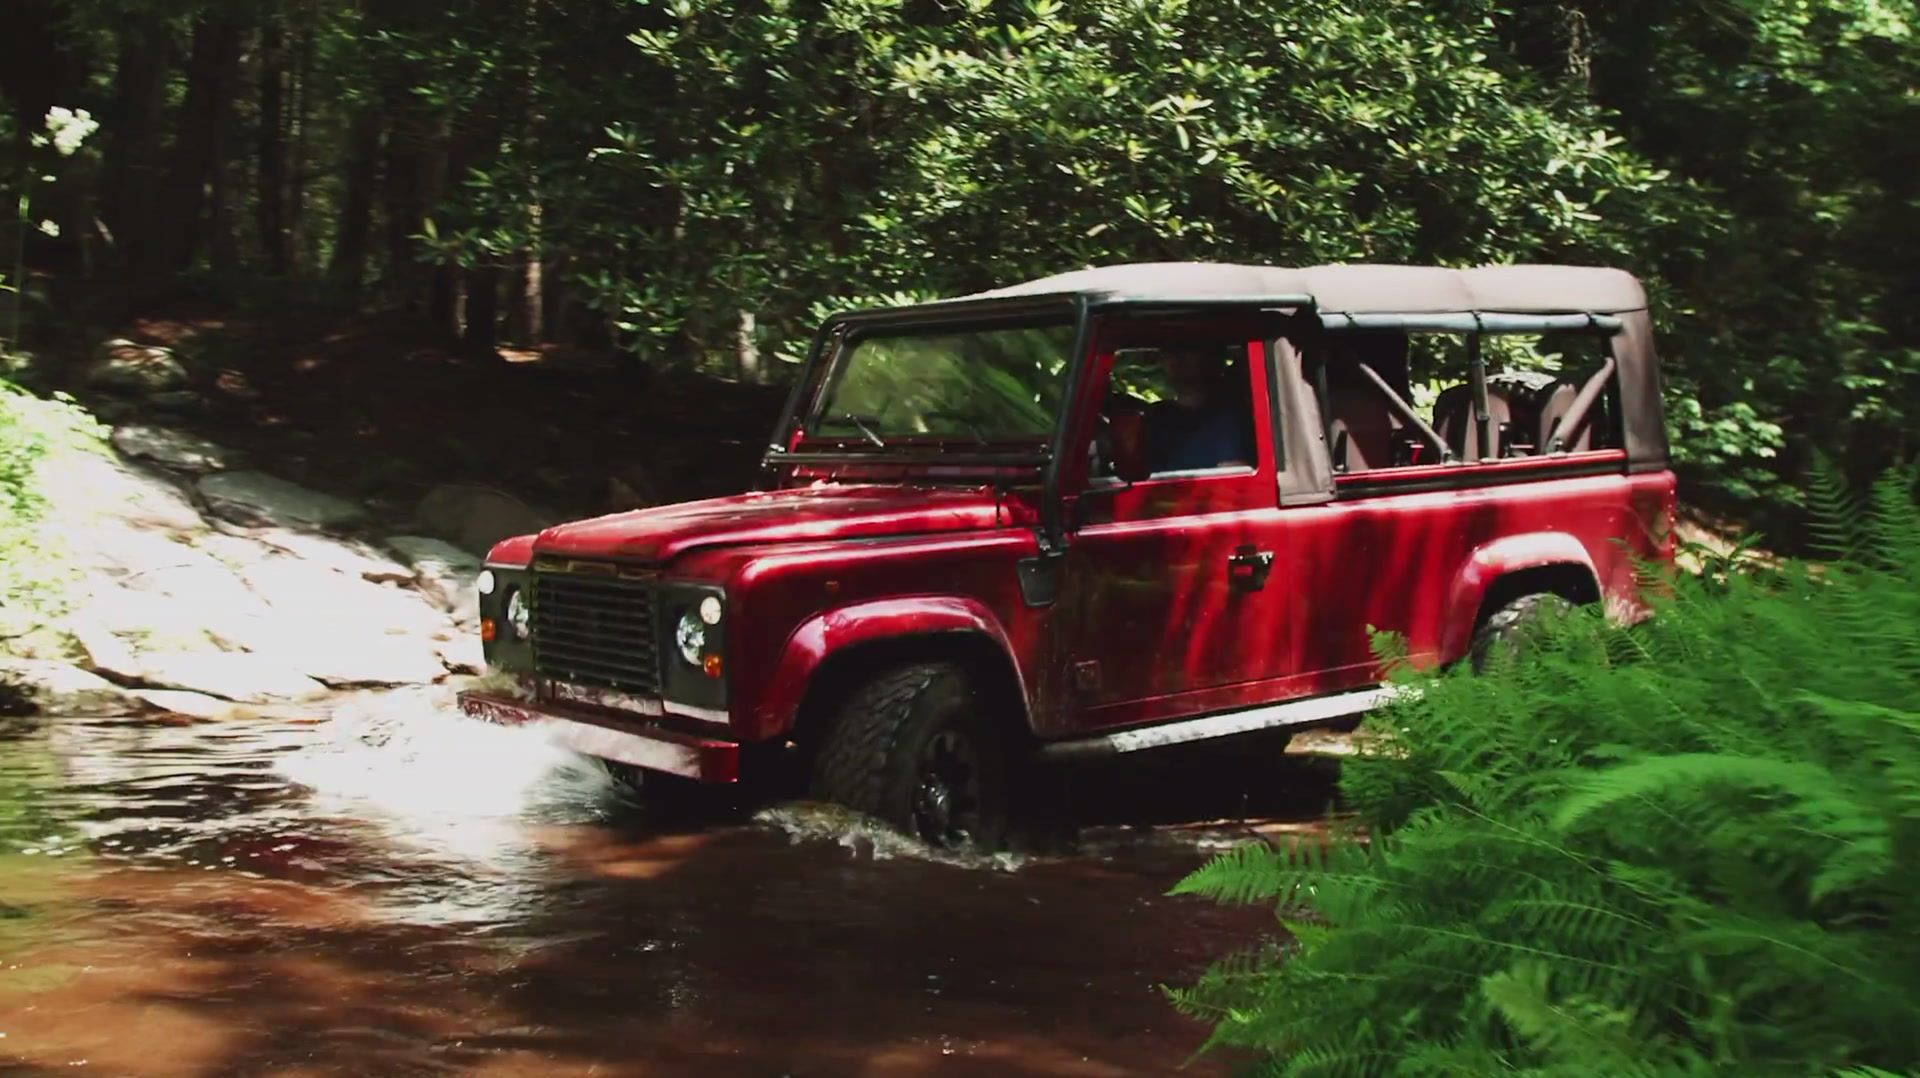 This Perfect Classic Defender Is Actually Brand-New From the Ground Up